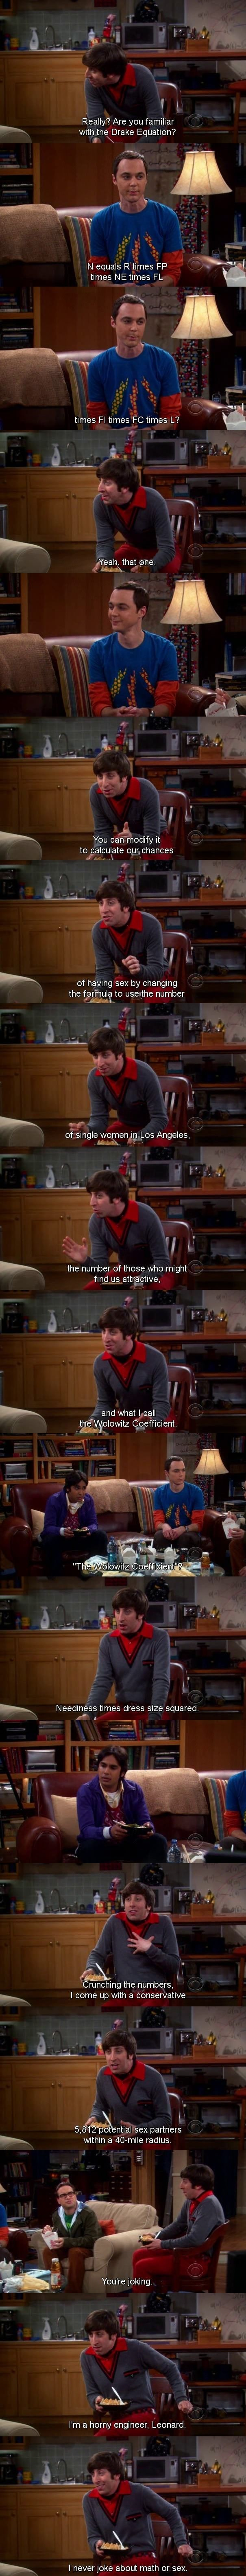 The Wolowitz Coefficient - funny-scenes.com